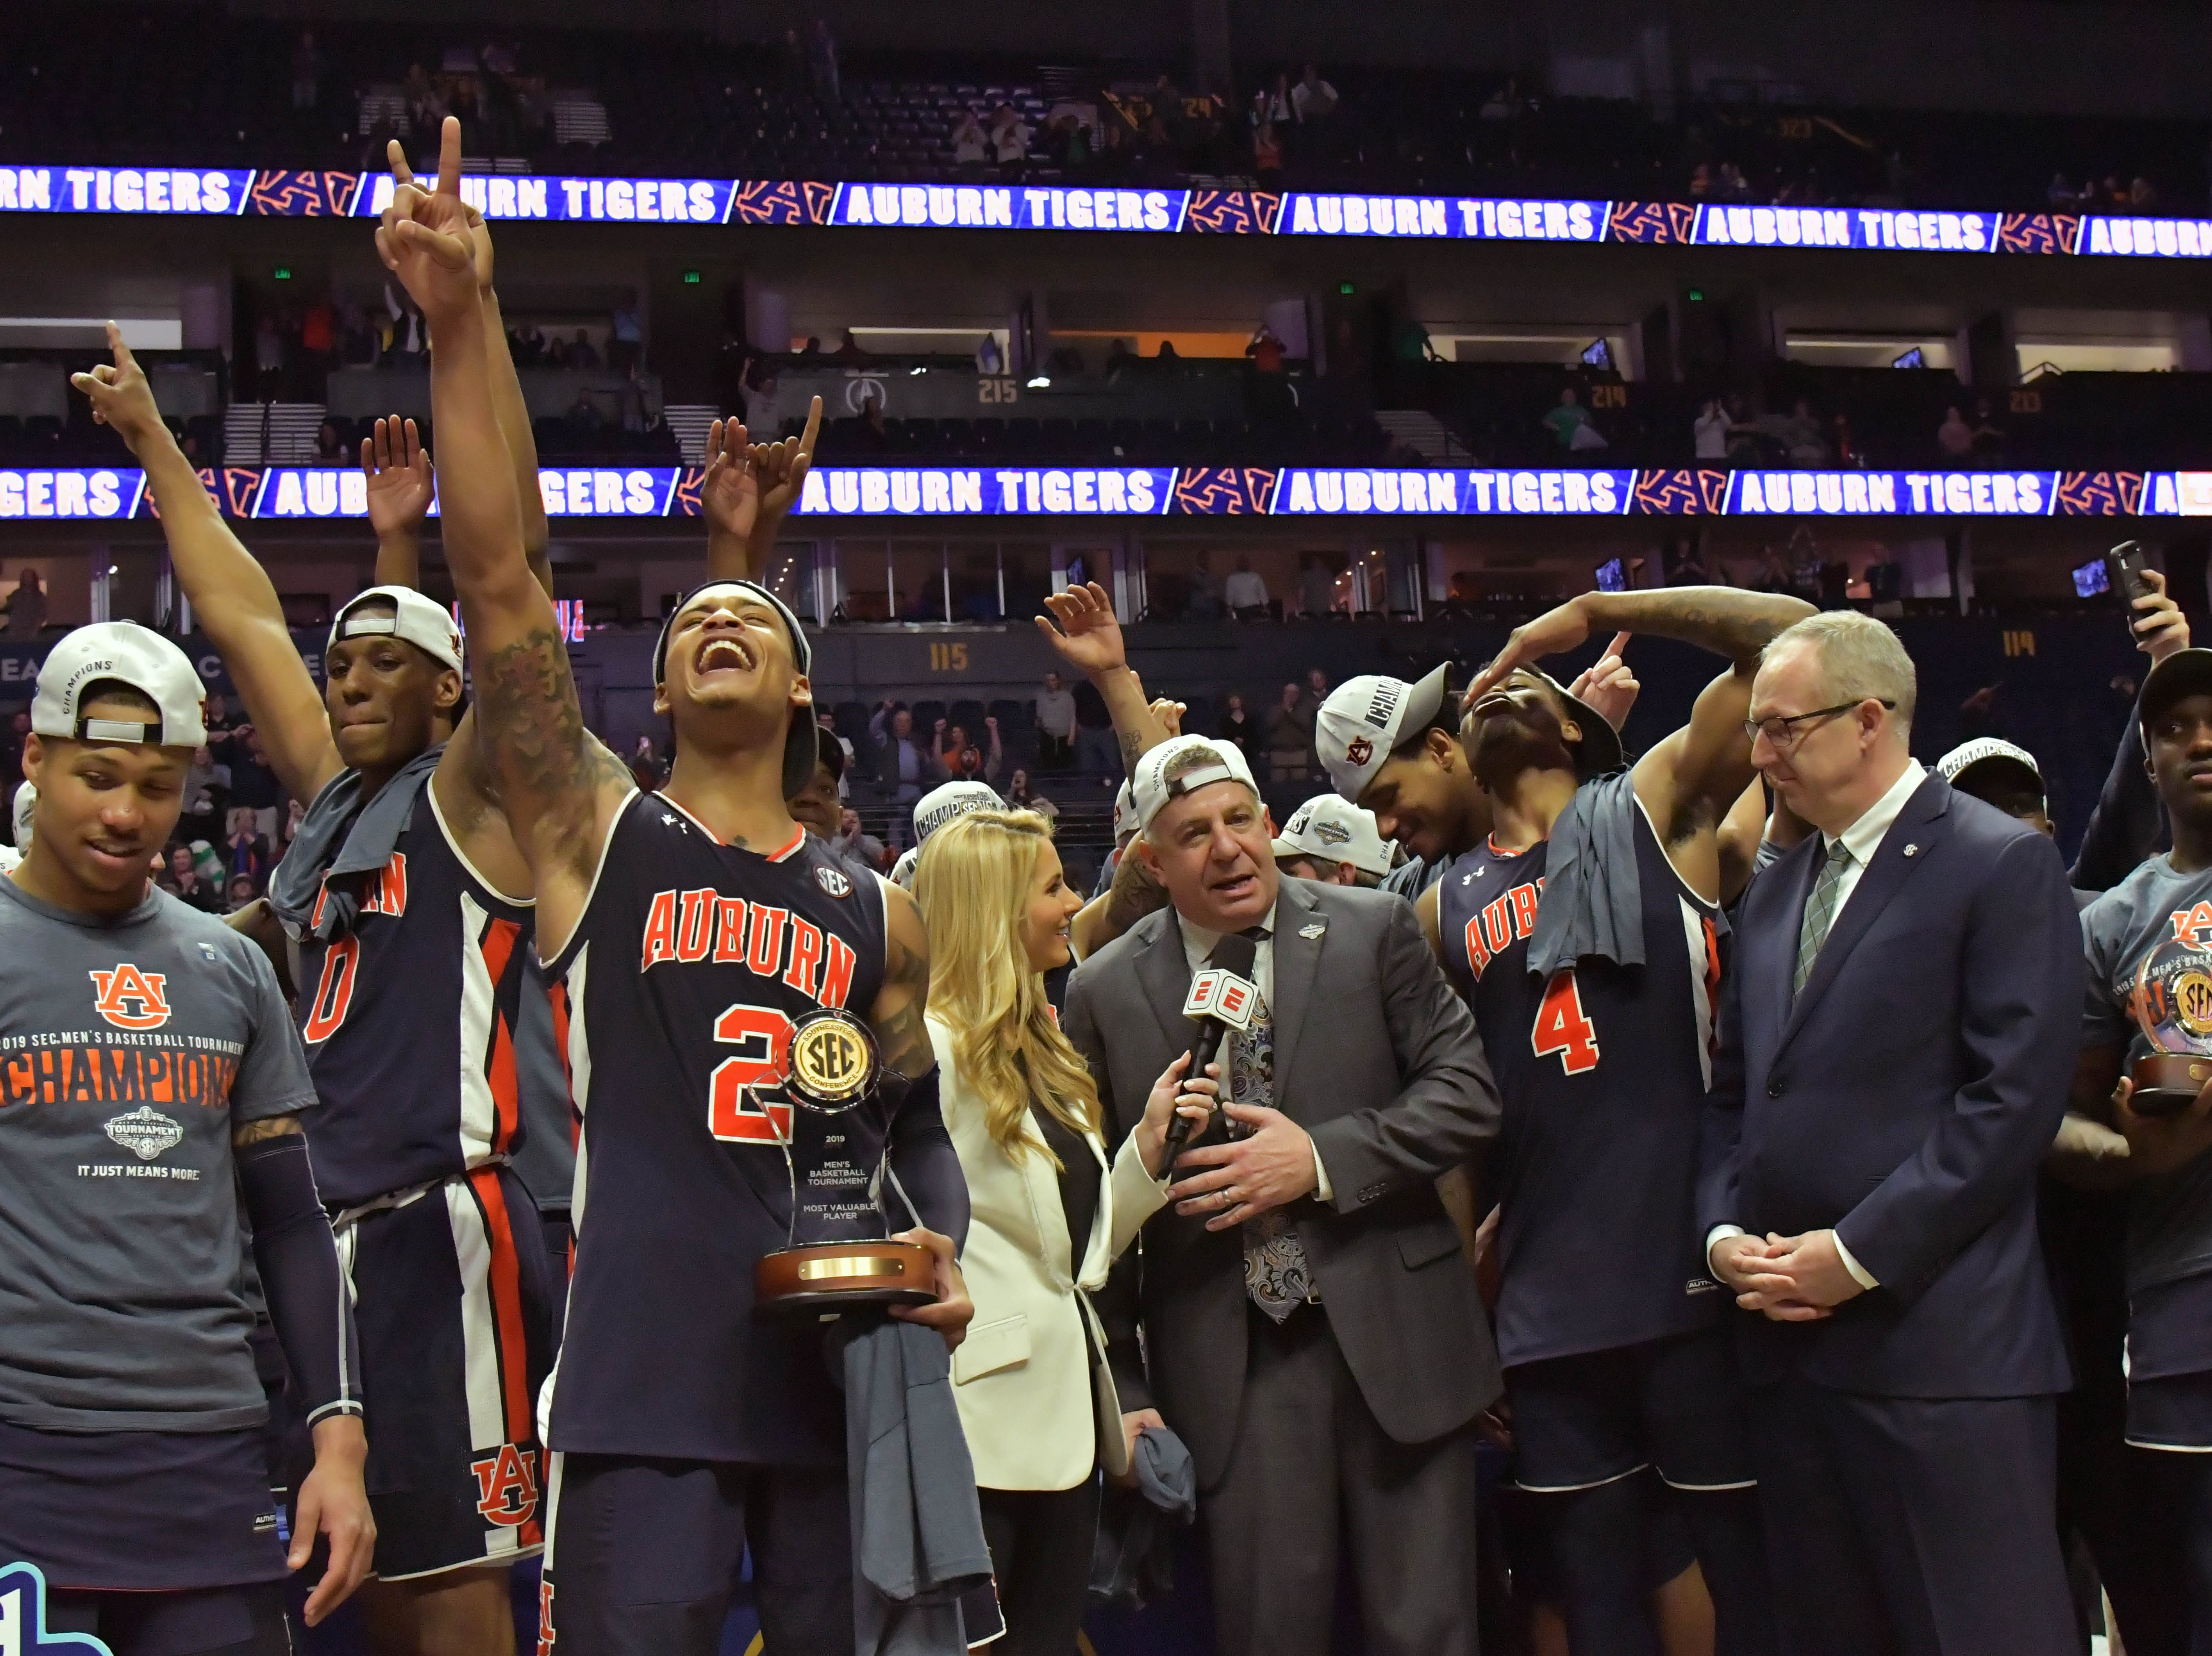 Mar 17, 2019; Nashville, TN, USA; following the championship game between the Tennessee Volunteers and the Auburn Tigers  in the SEC conference tournament at Bridgestone Arena. Auburn won 84-64. Mandatory Credit: Jim Brown-USA TODAY Sports